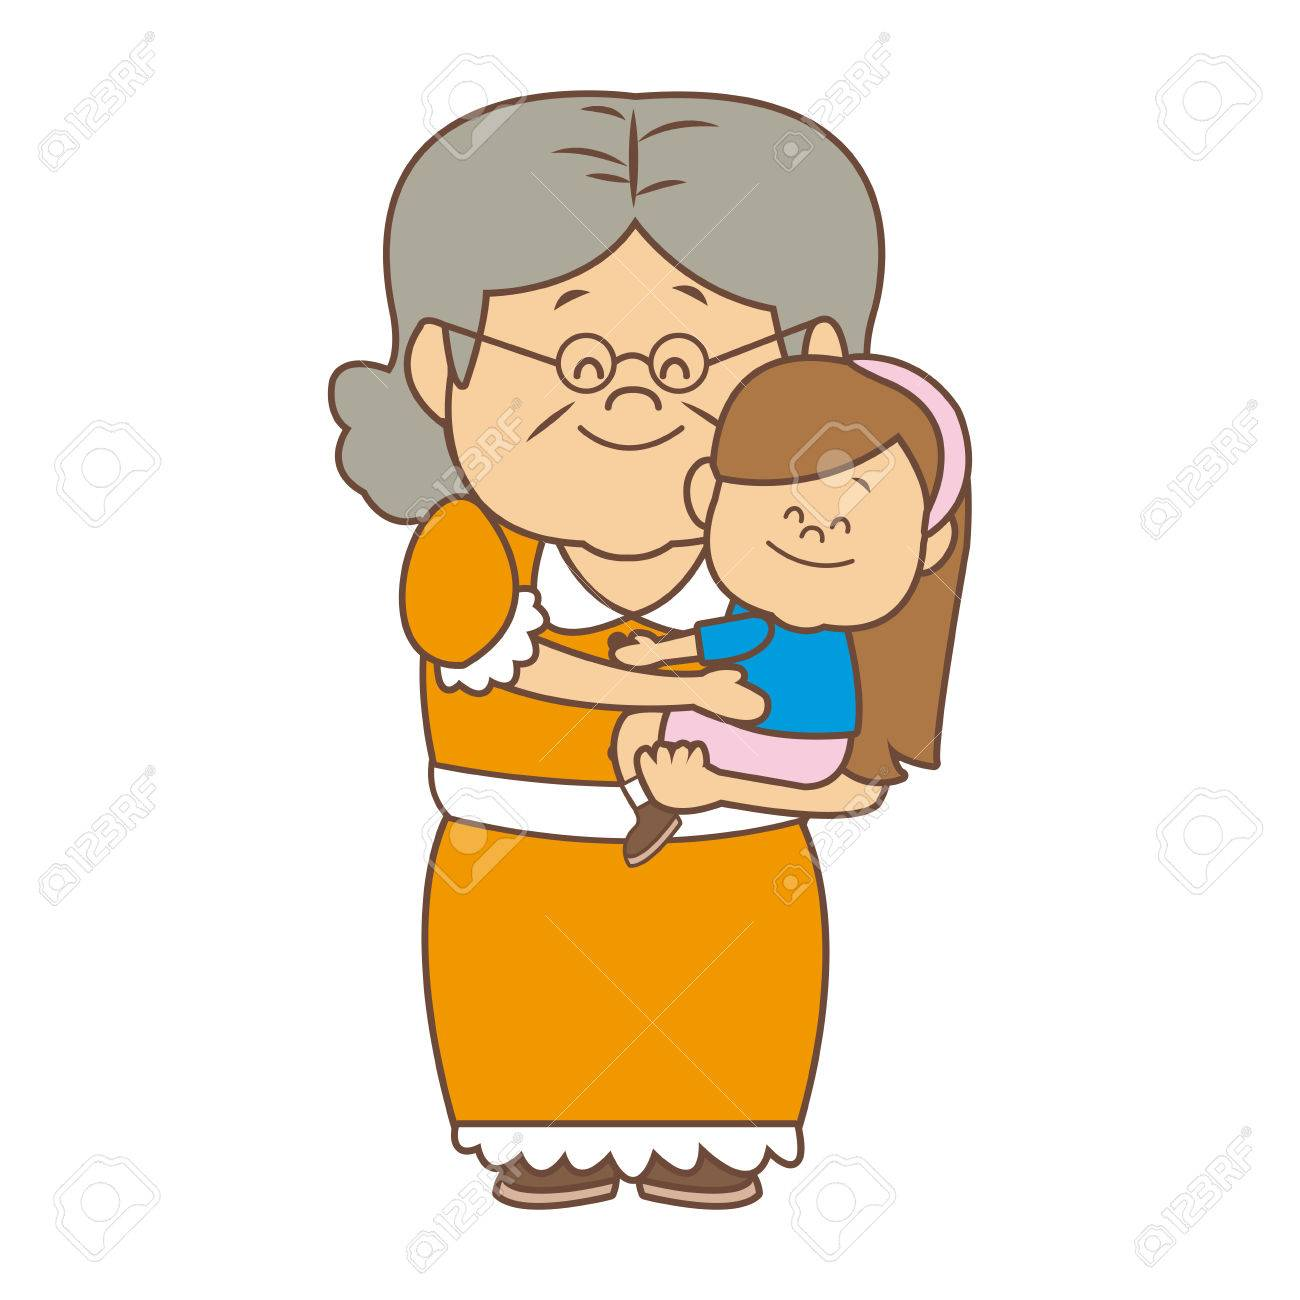 little girl and grandmother together family vector illustration - 82189826